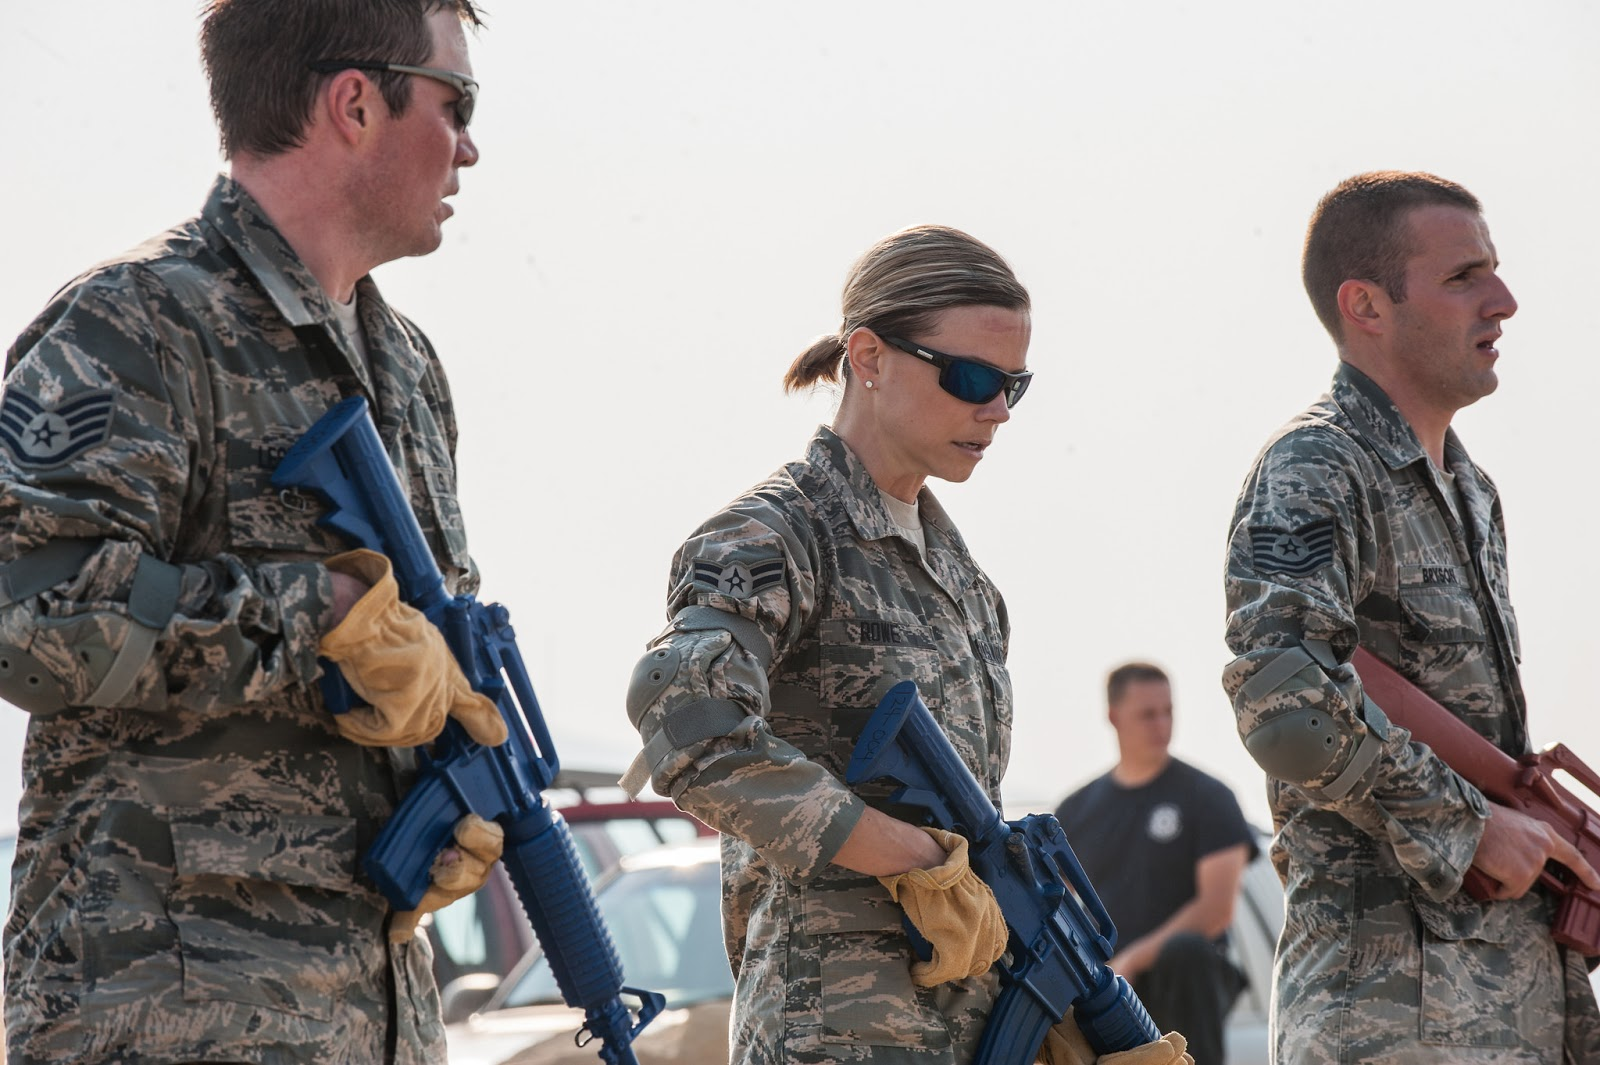 Security Forces Officer, Air National Guard Security Forces, Commission in  the Air National Guard